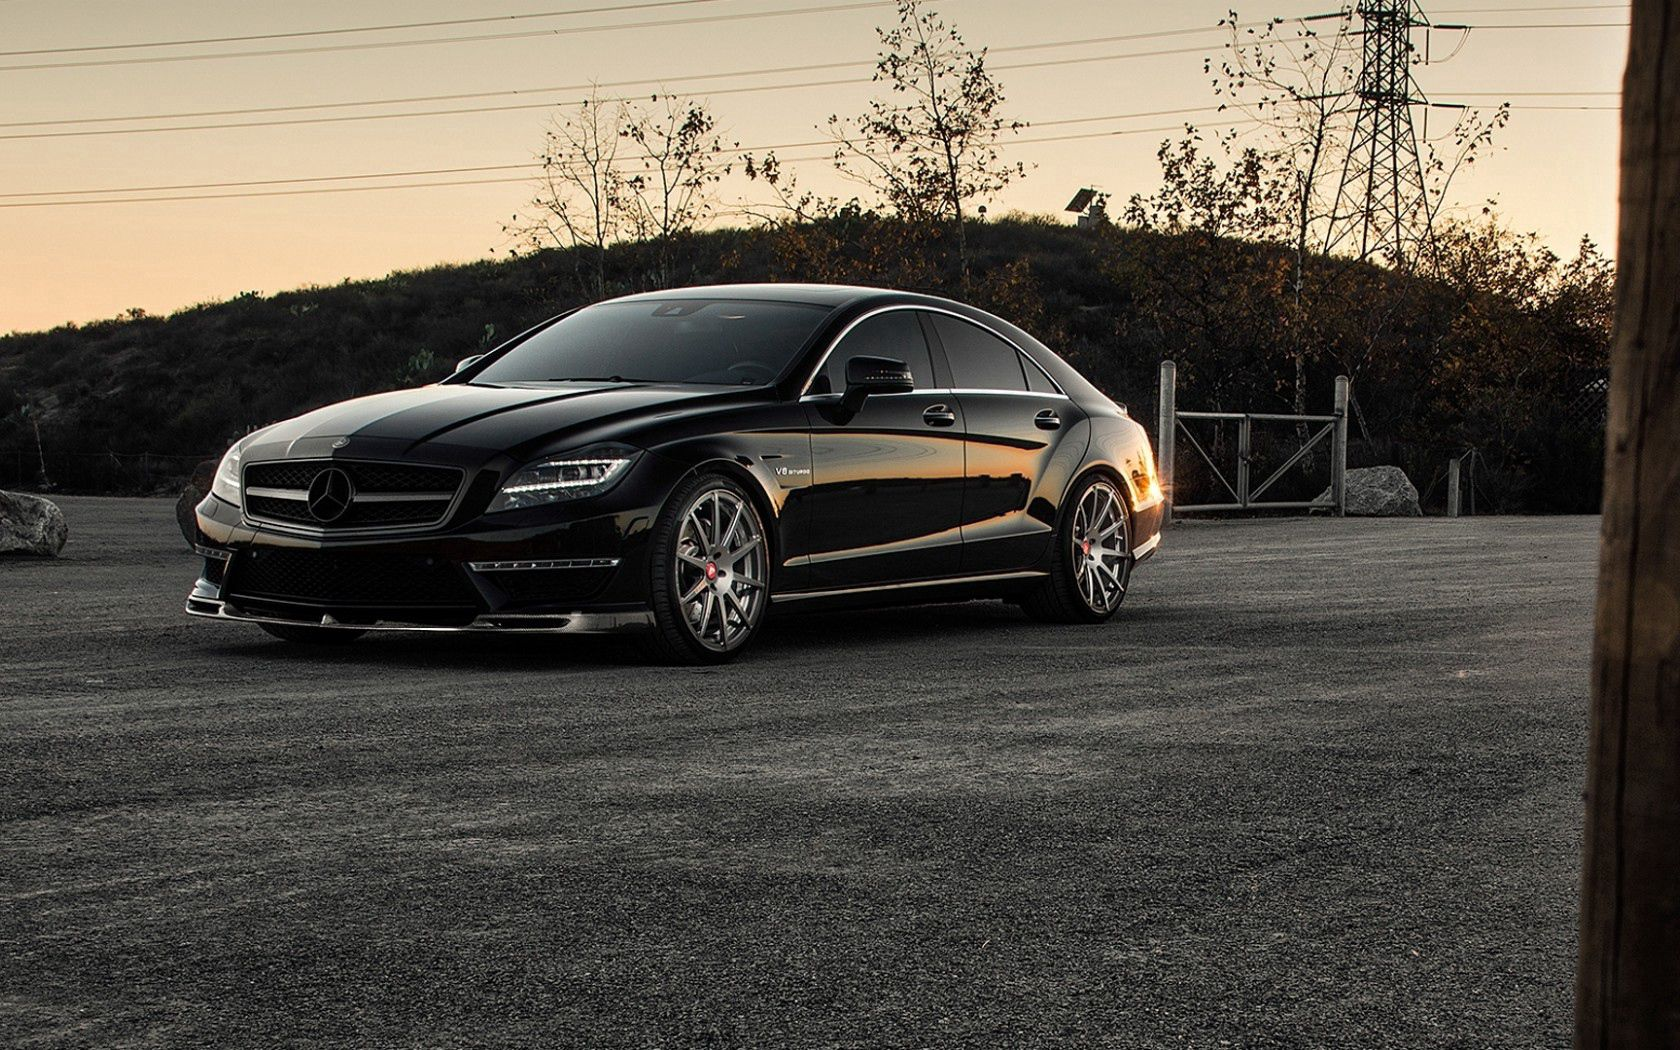 157727 download wallpaper Cars, Amg, Mercedes-Benz, Clk-Class, Cls 63 screensavers and pictures for free